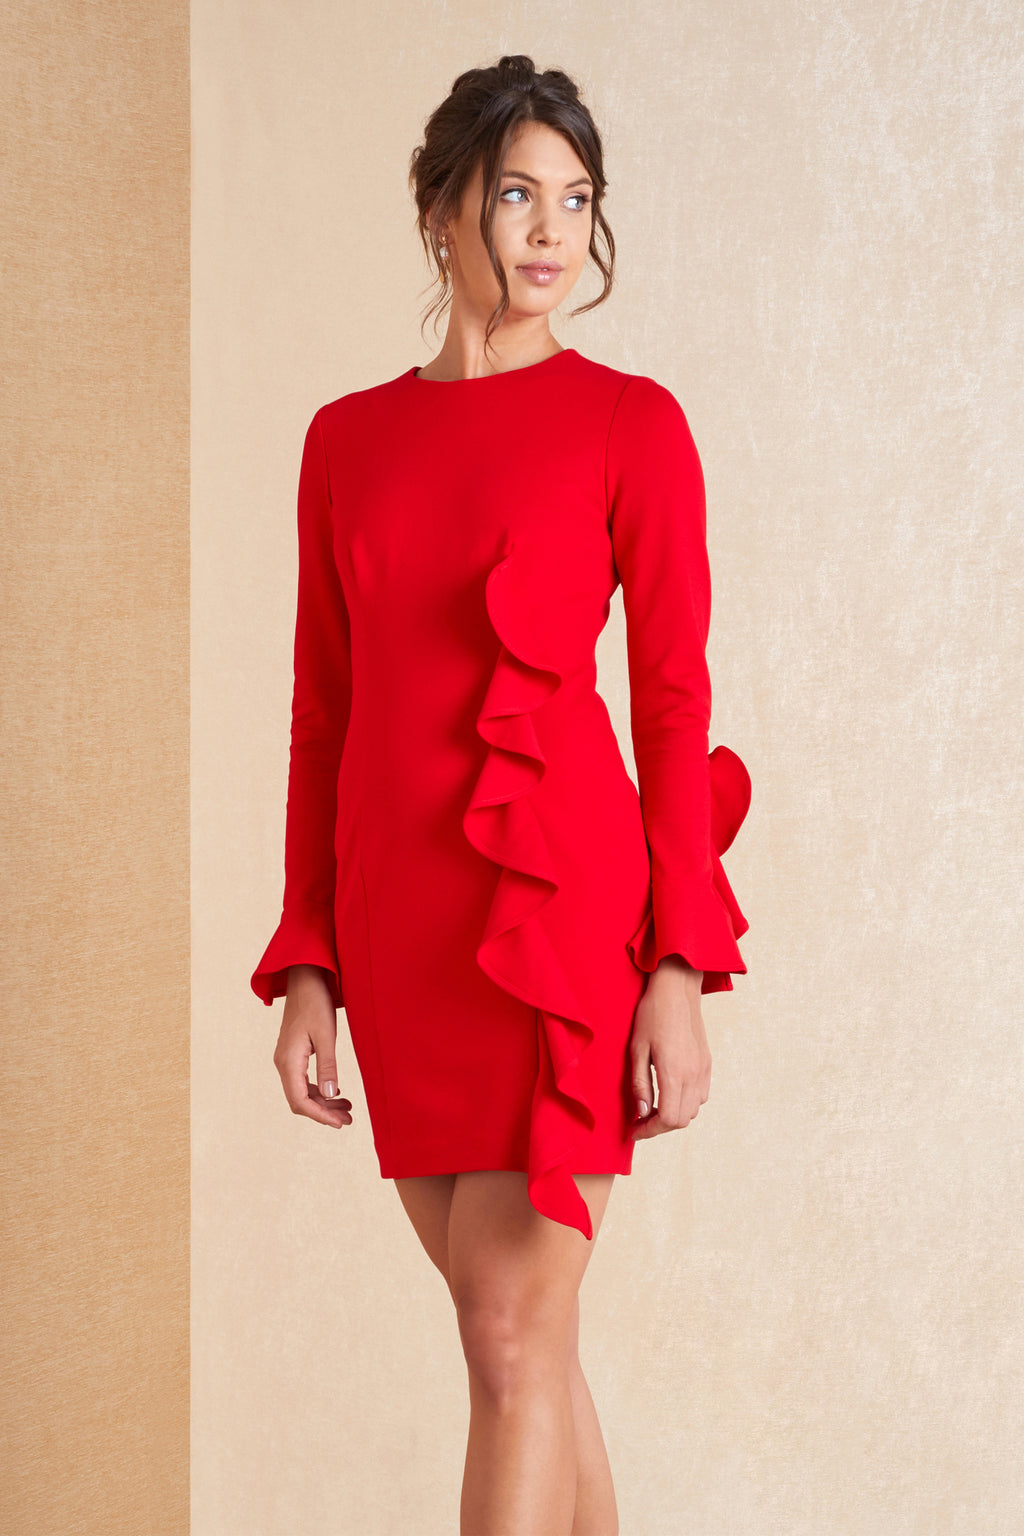 Long Sleeve Mini Frill Dress - April & Alex